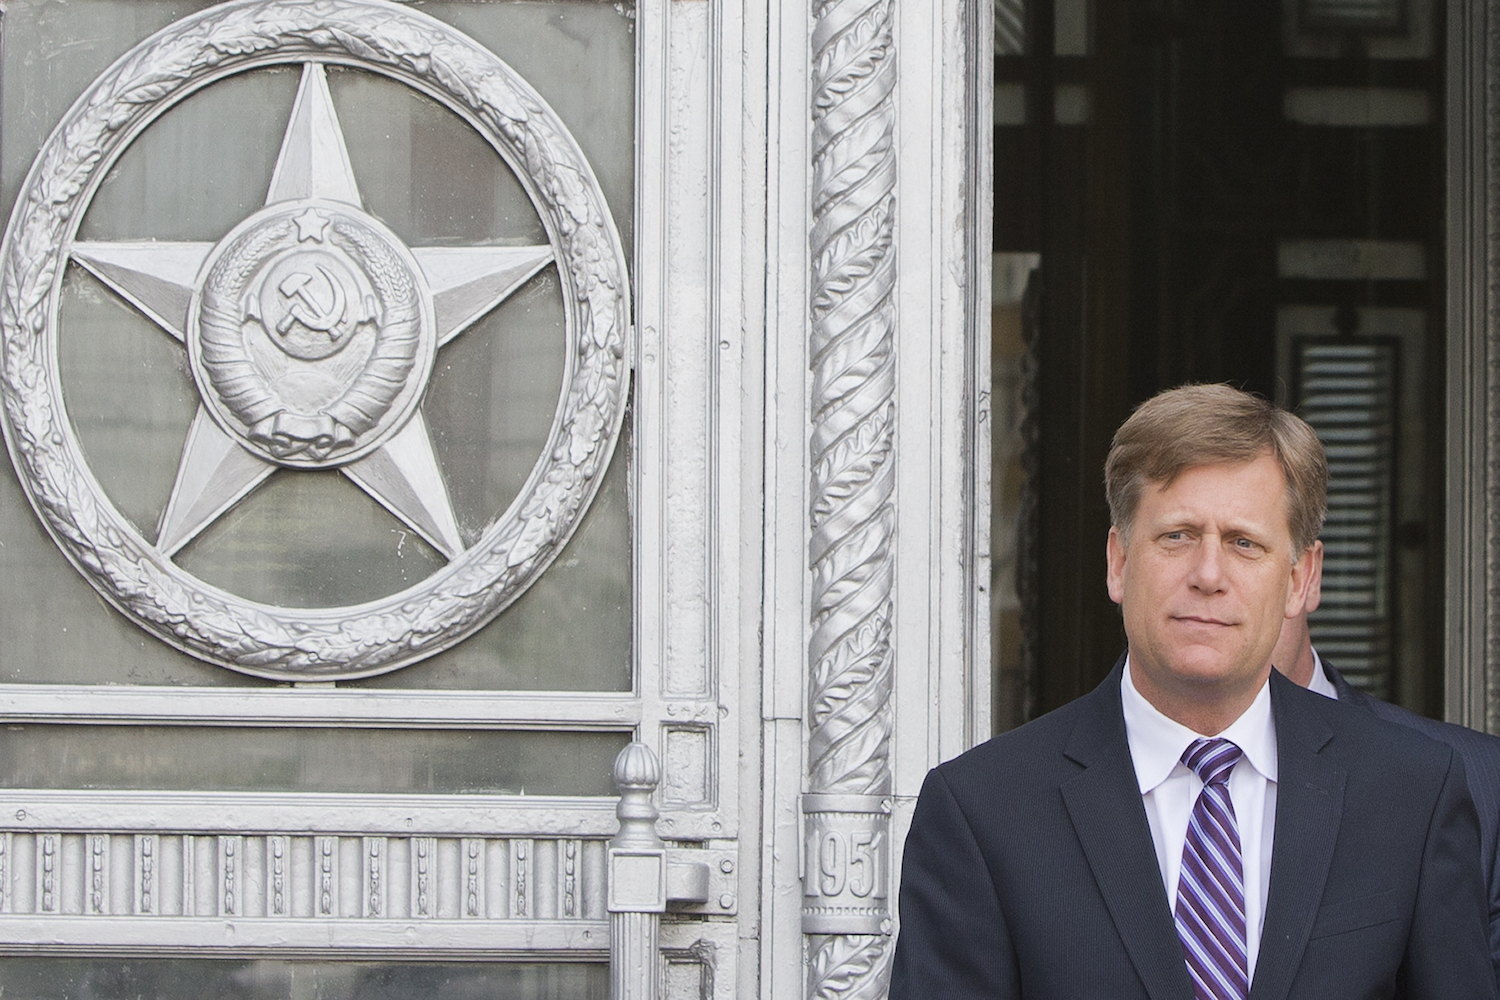 In this May 15, 2013 file photo, U.S. Ambassador to Russia Michael McFaul leaves the Foreign Ministry in Moscow, Russia. (Misha Japaridze/AP)